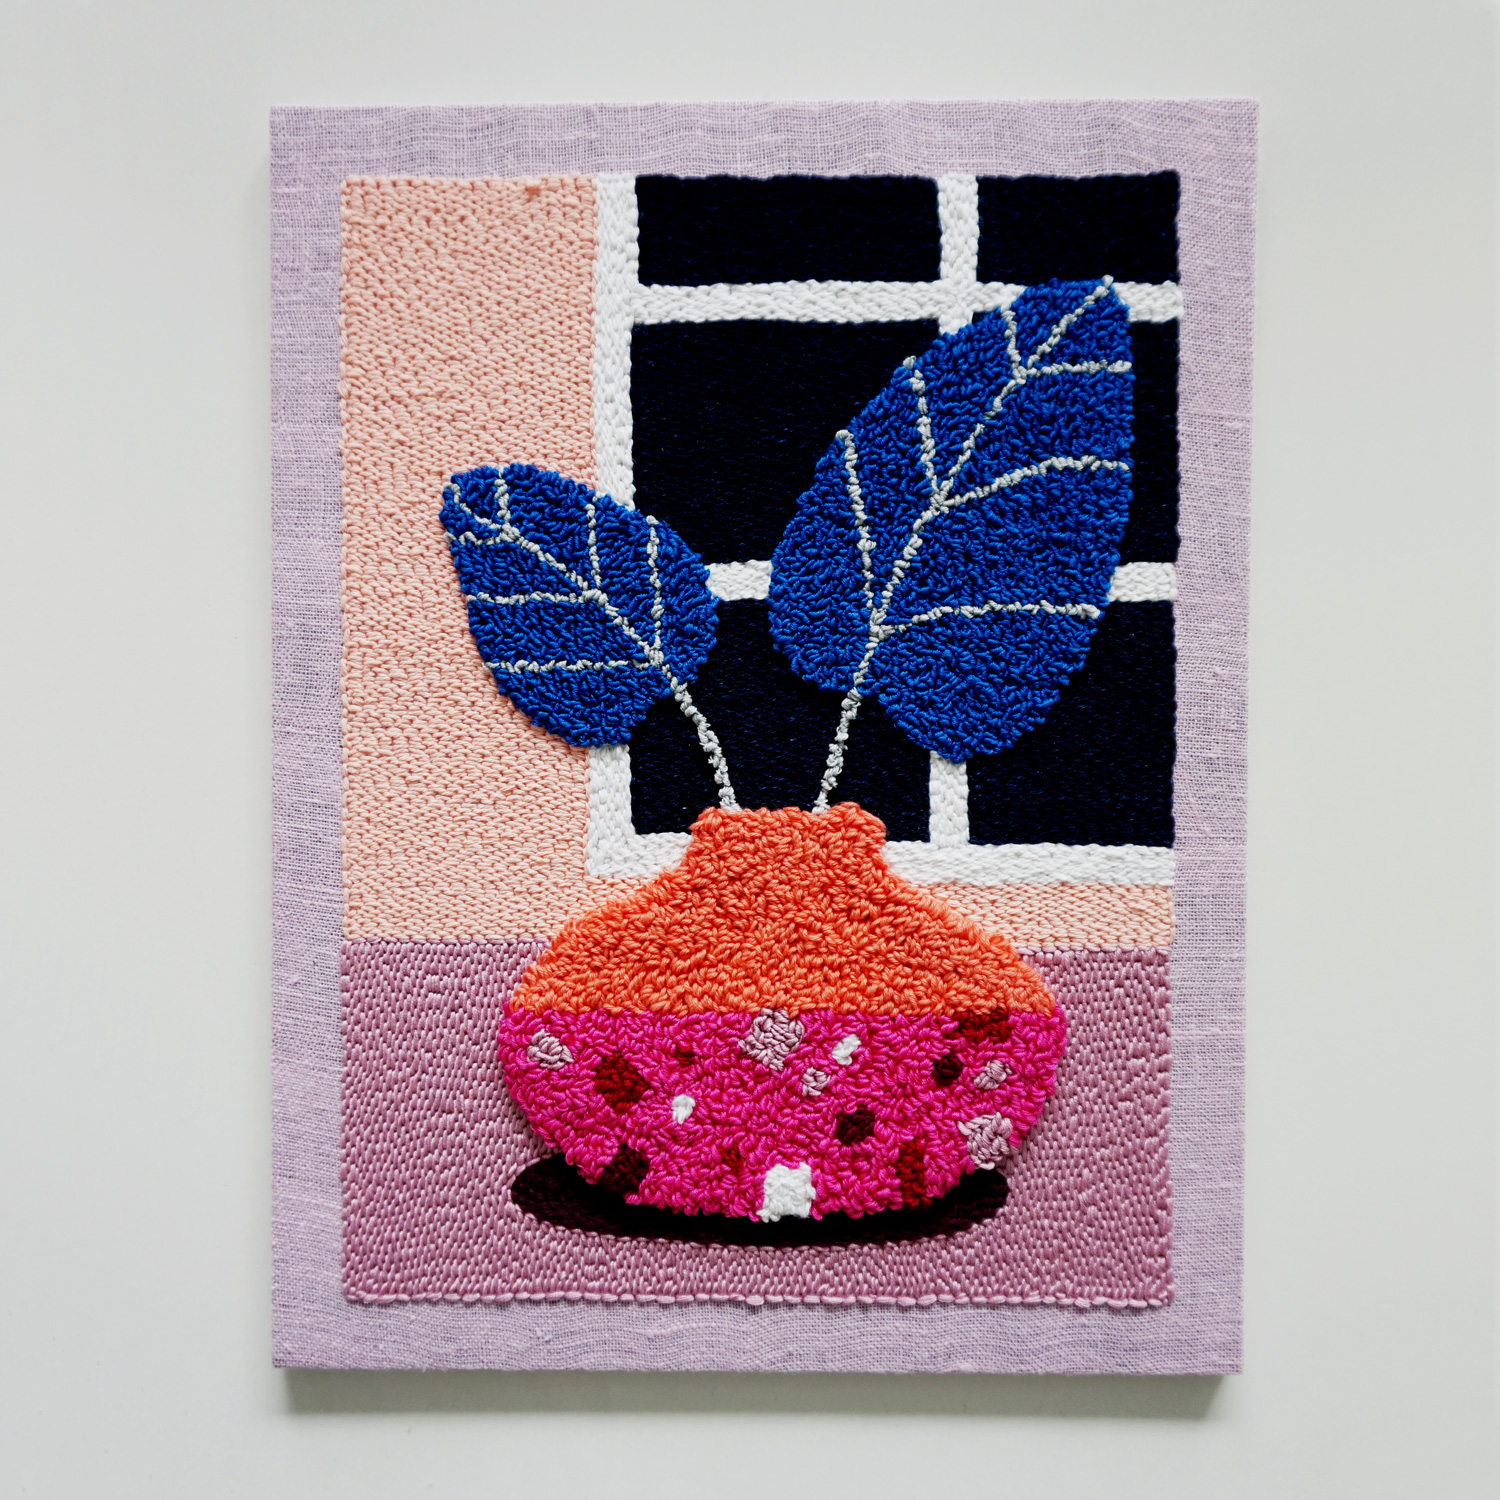 A small punch needle art work, featuring a bold terracotta vase with large blue plant leaves in front of a window overlooking the night sky.